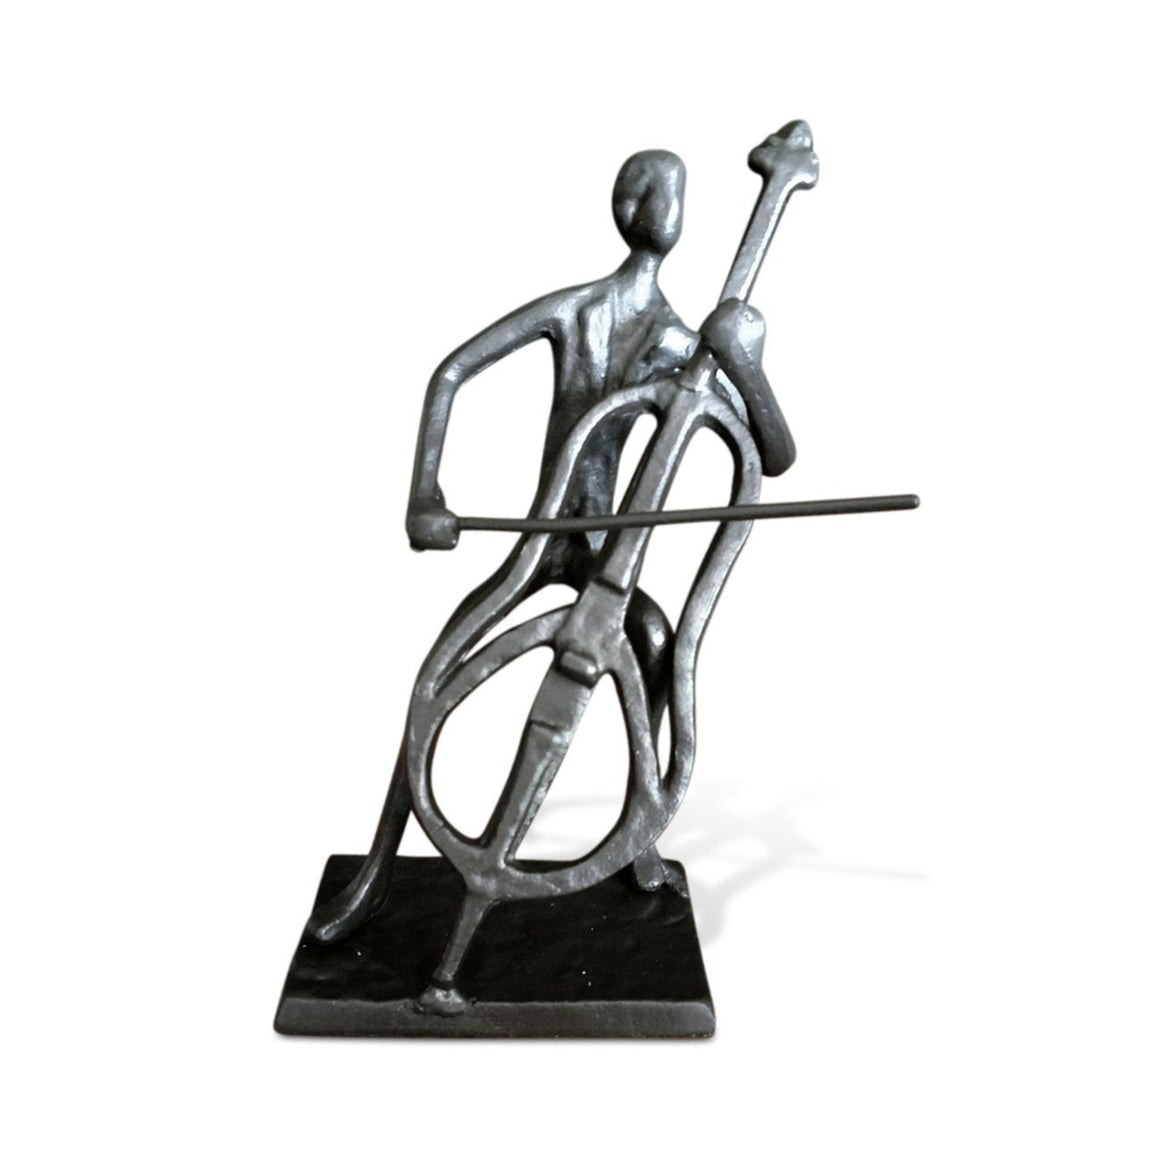 Musician Playing Cello Sculpture Figurine - Cast Iron - Abstract - Rustic Deco Incorporated